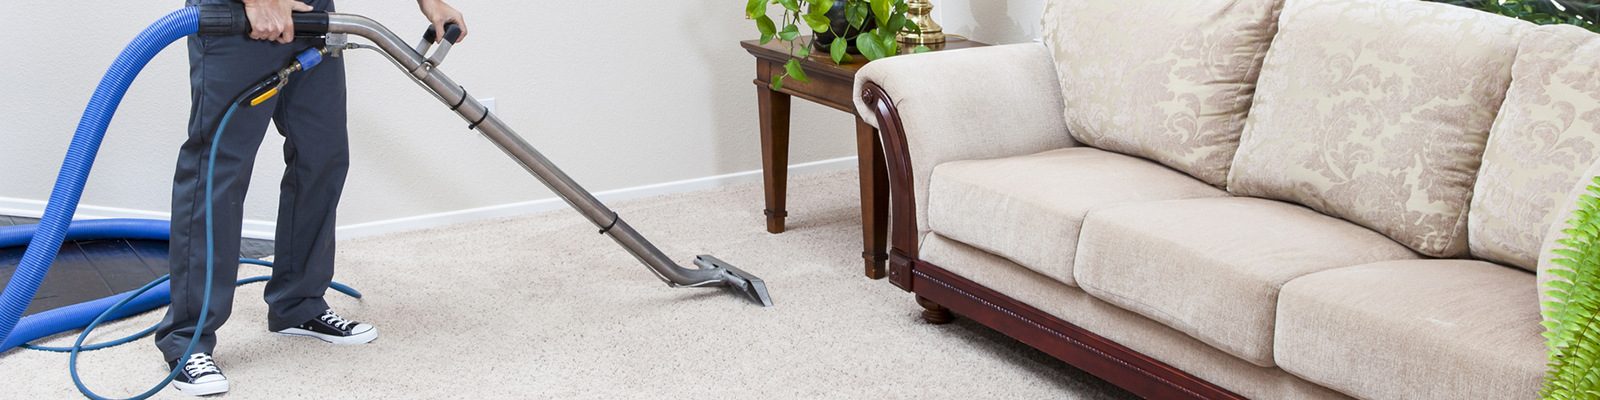 Carpet Cleaning Laa Niguel Steam Professional Cleaners